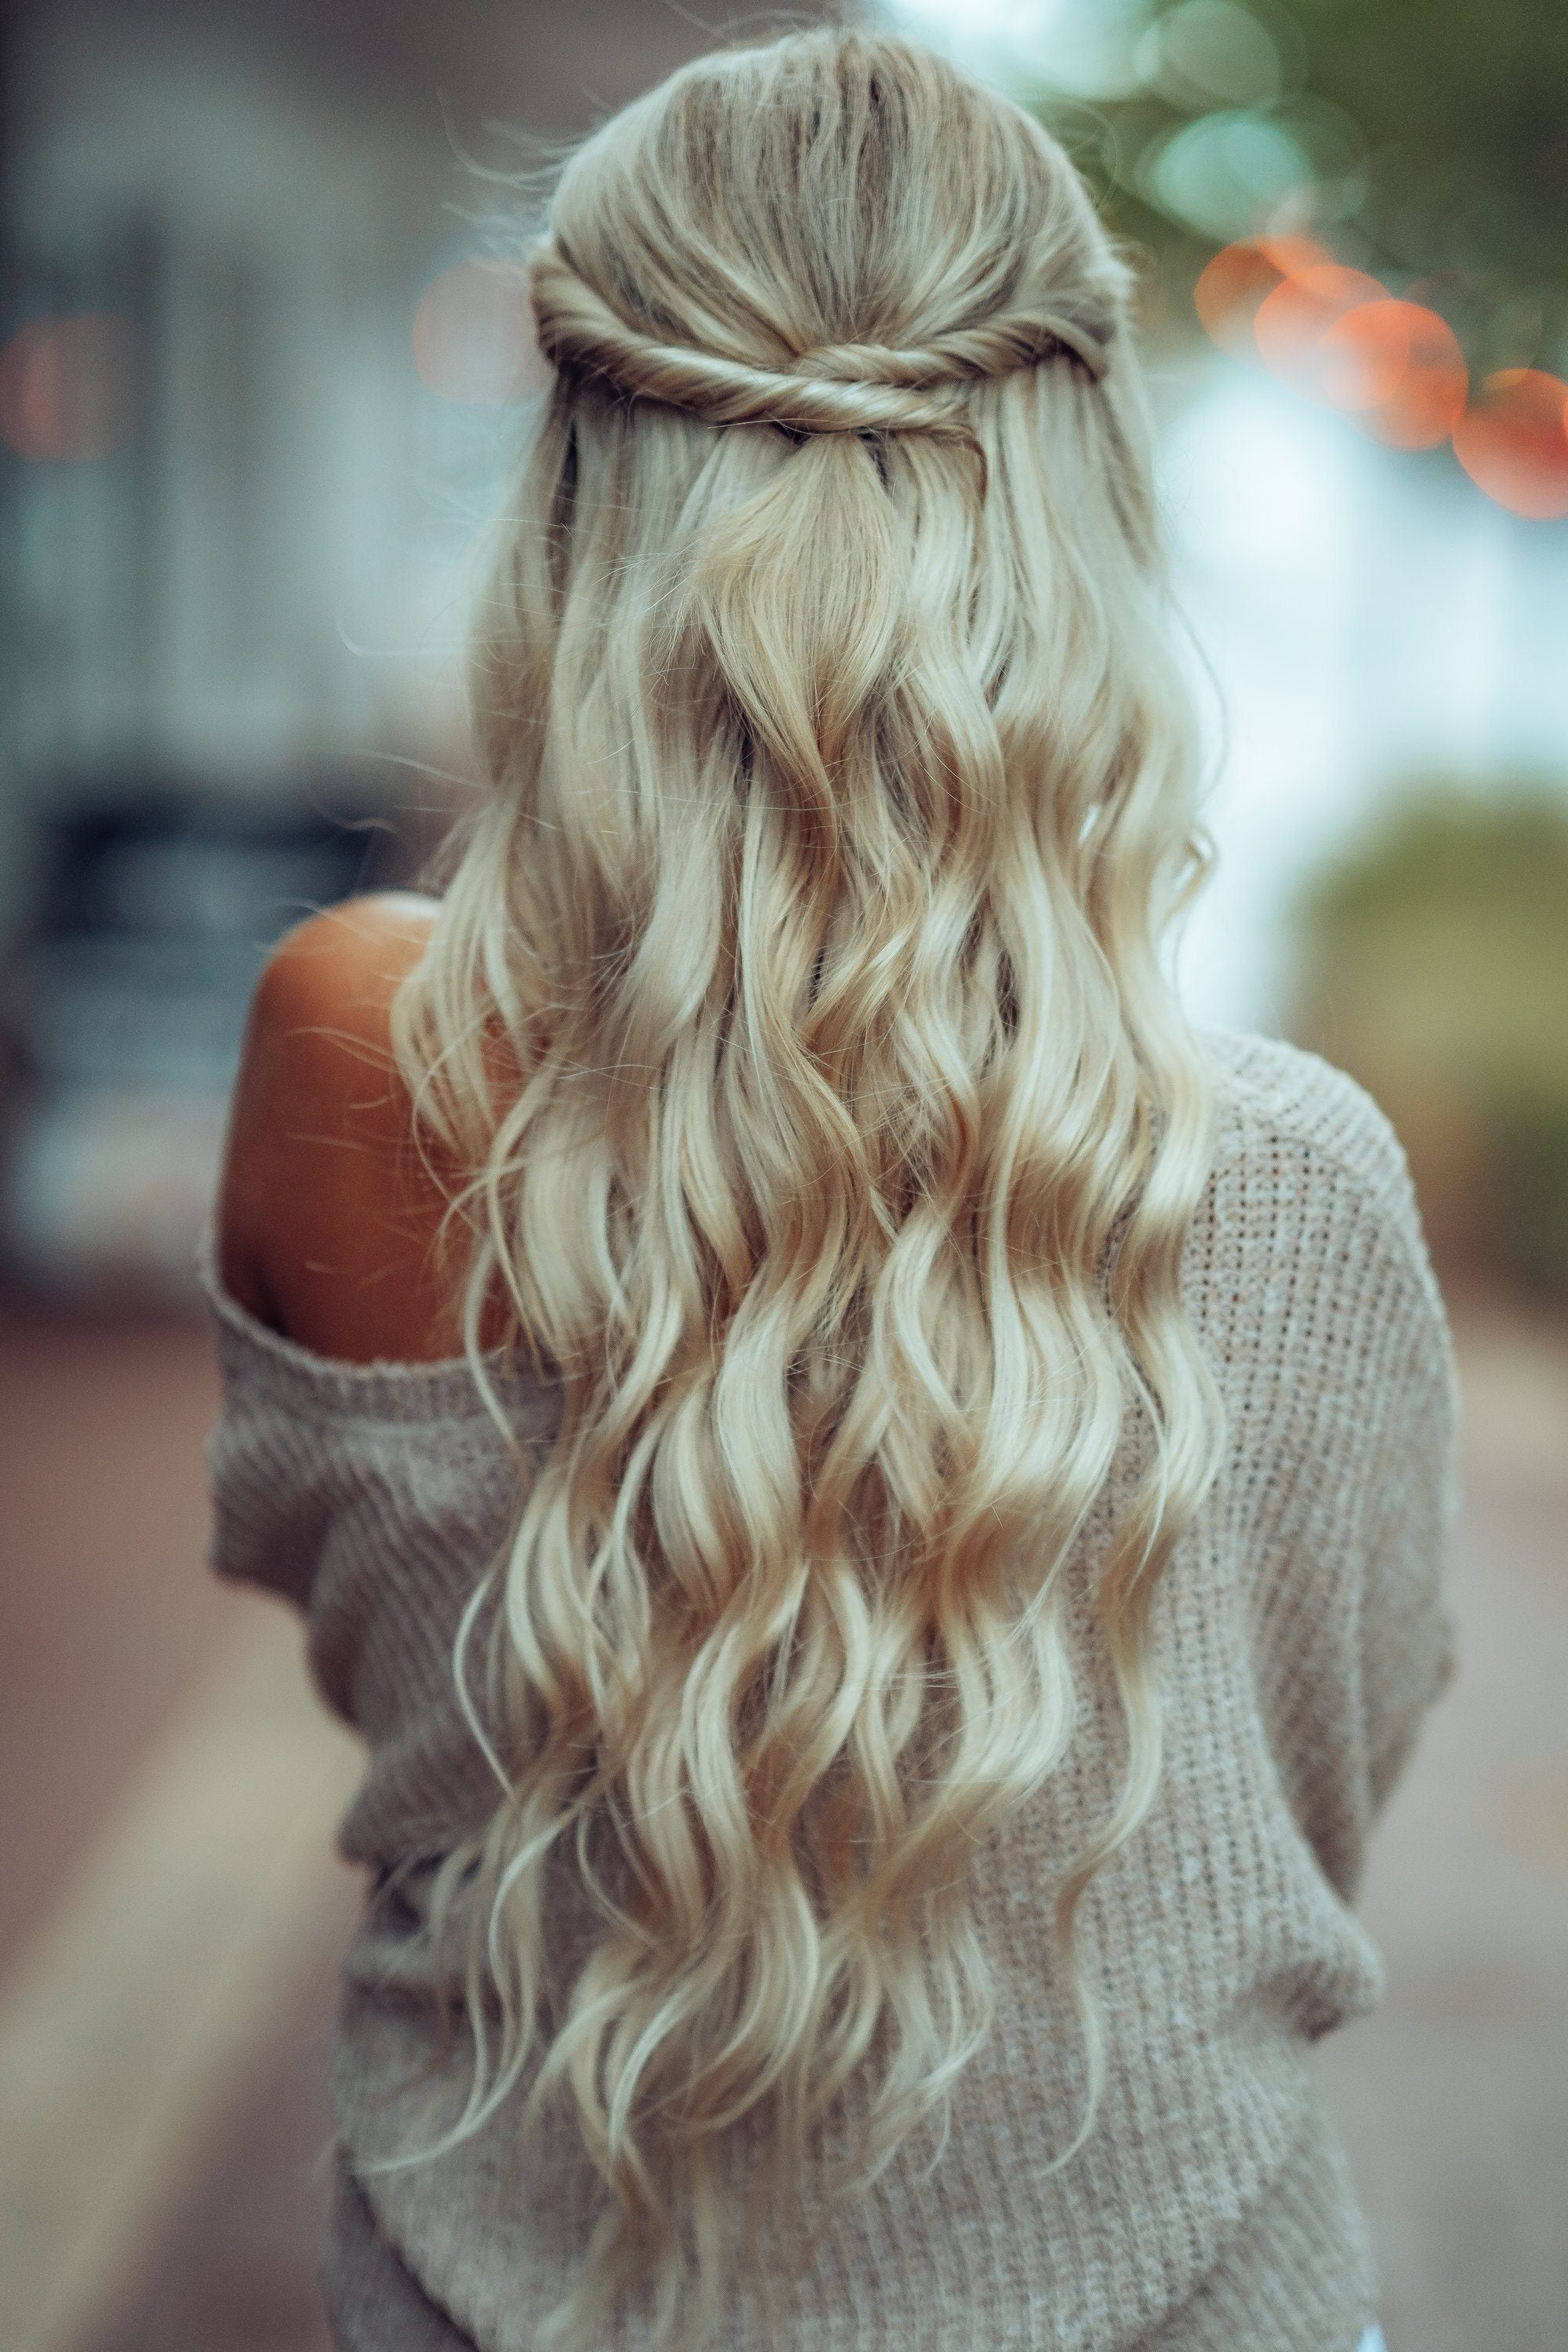 6 Stunning Lazy Girl Hairstyles to Do at Home